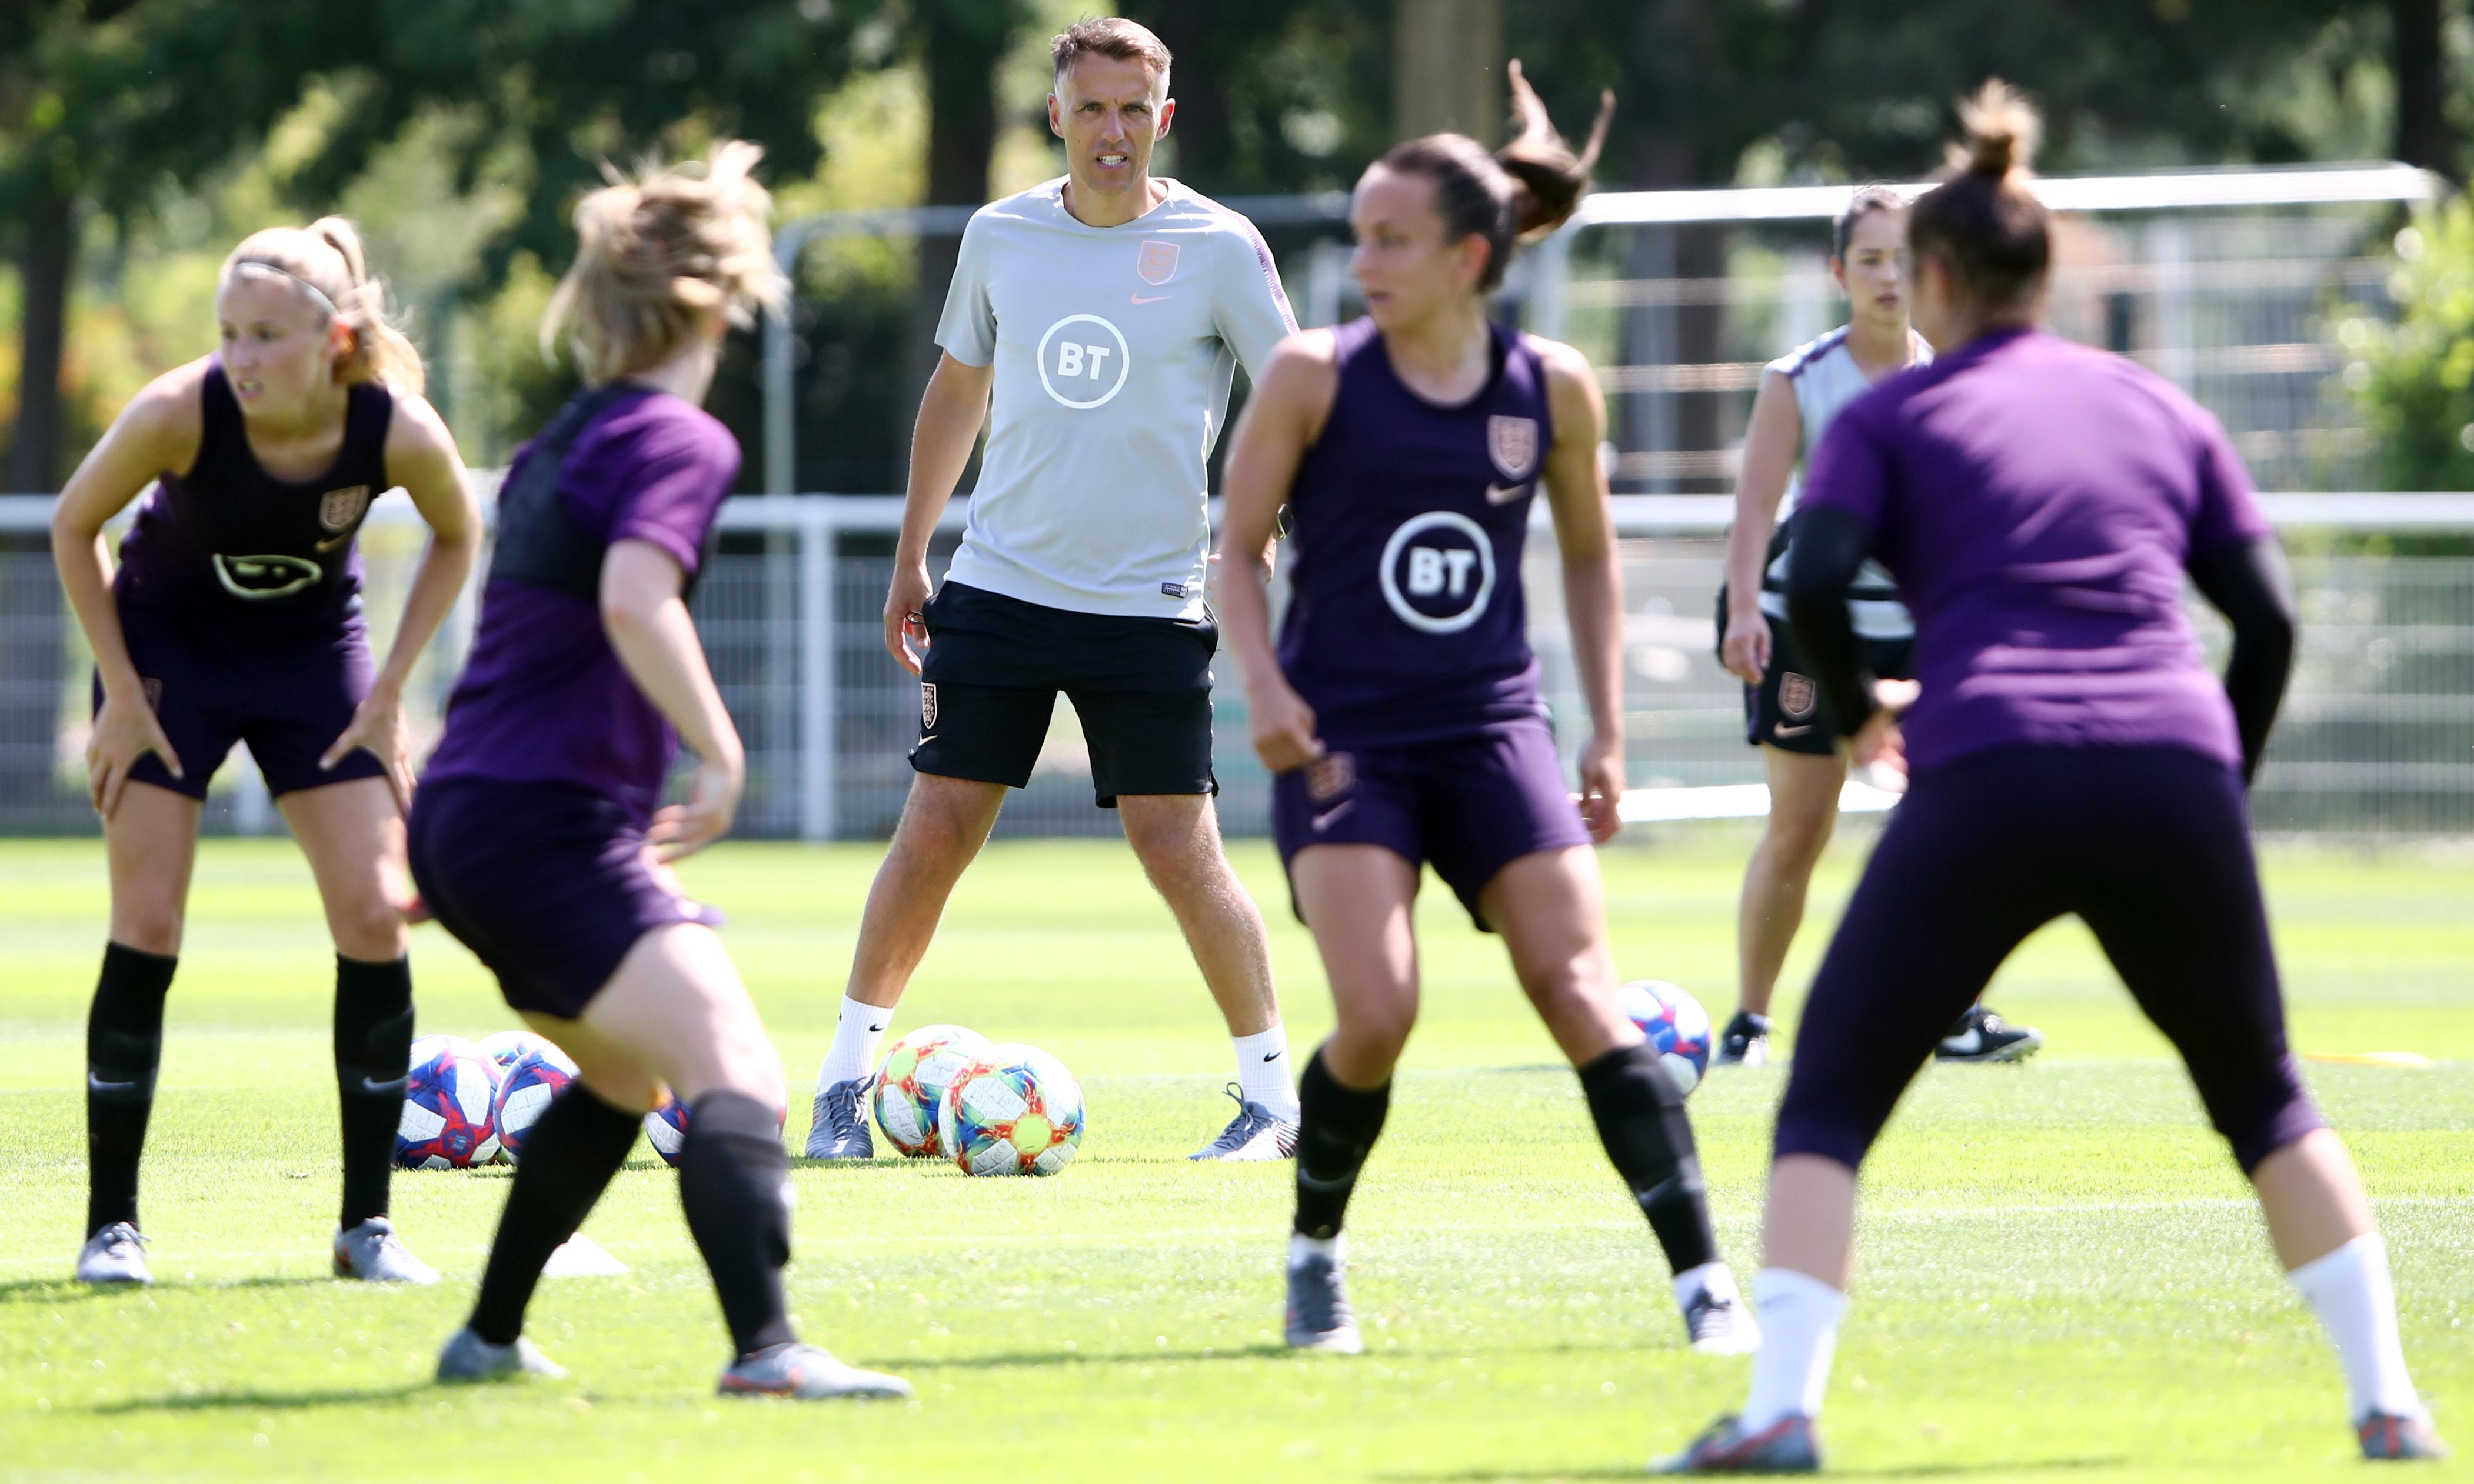 England and Neville face Norway test amid heatwave and a dodgy haircut